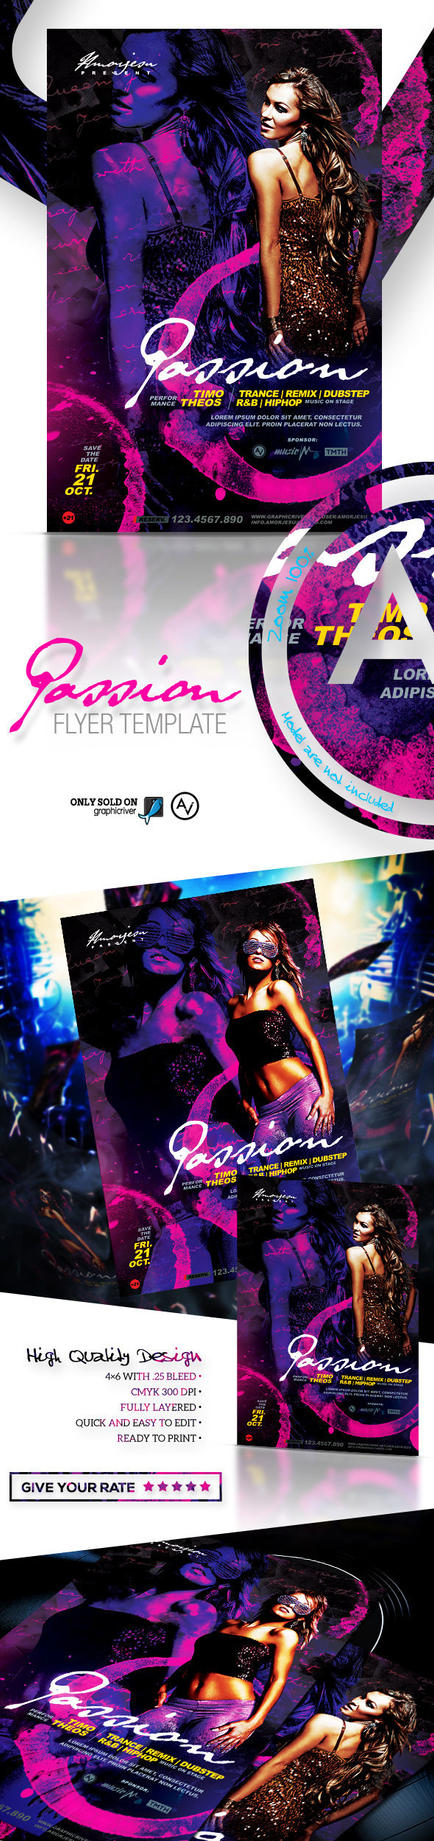 Passion Flyer Template by amorjesu